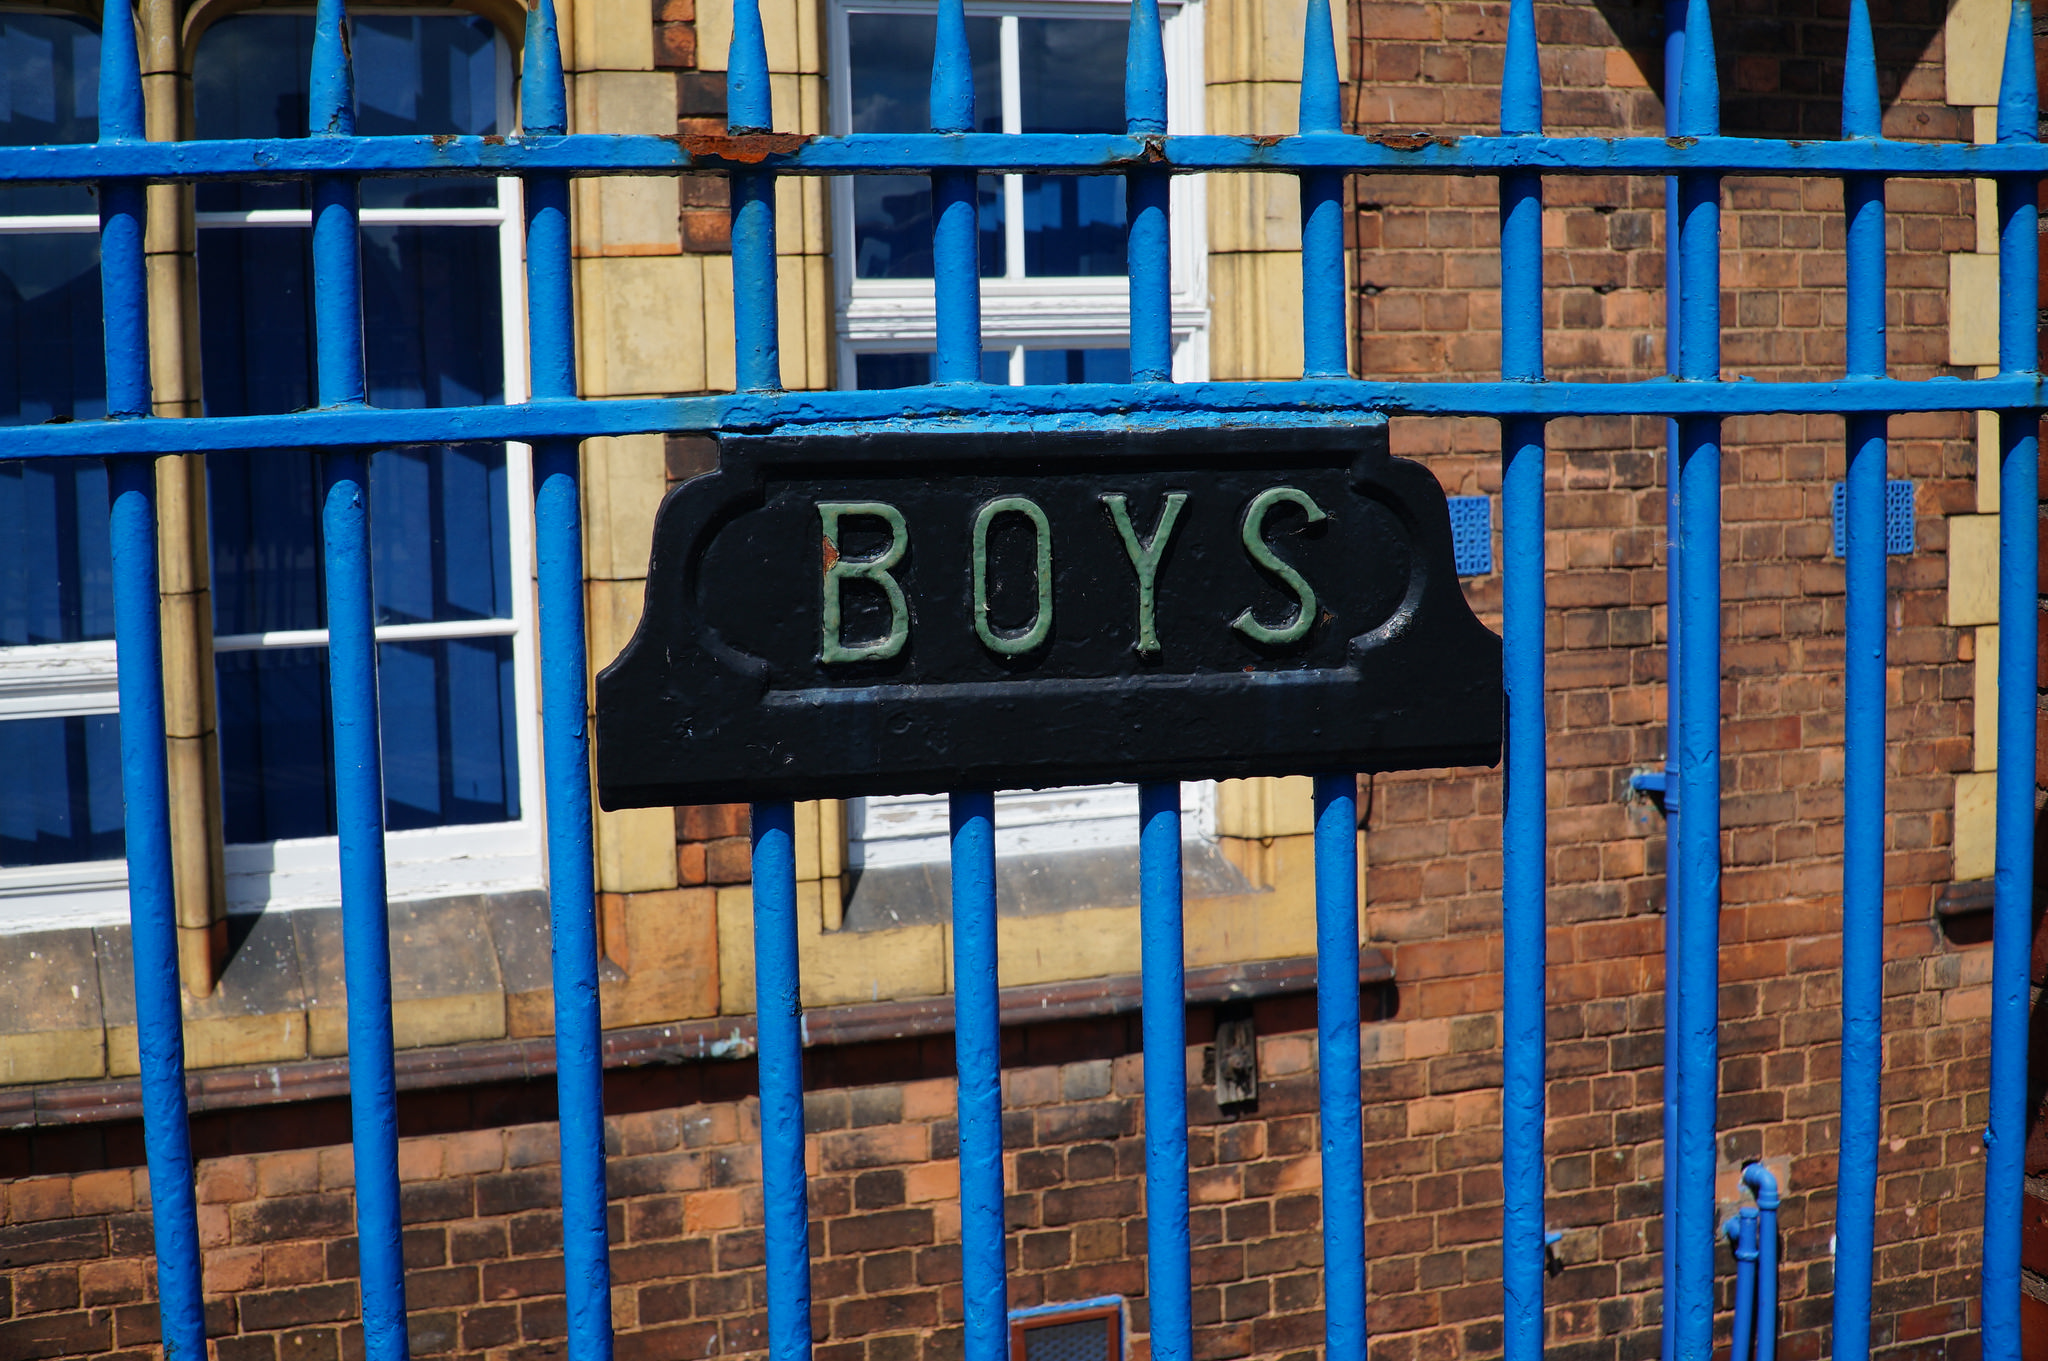 The sign says 'Boys' on railings at Benson Community School: image by Tim Ellis, CC By-NC 2.0